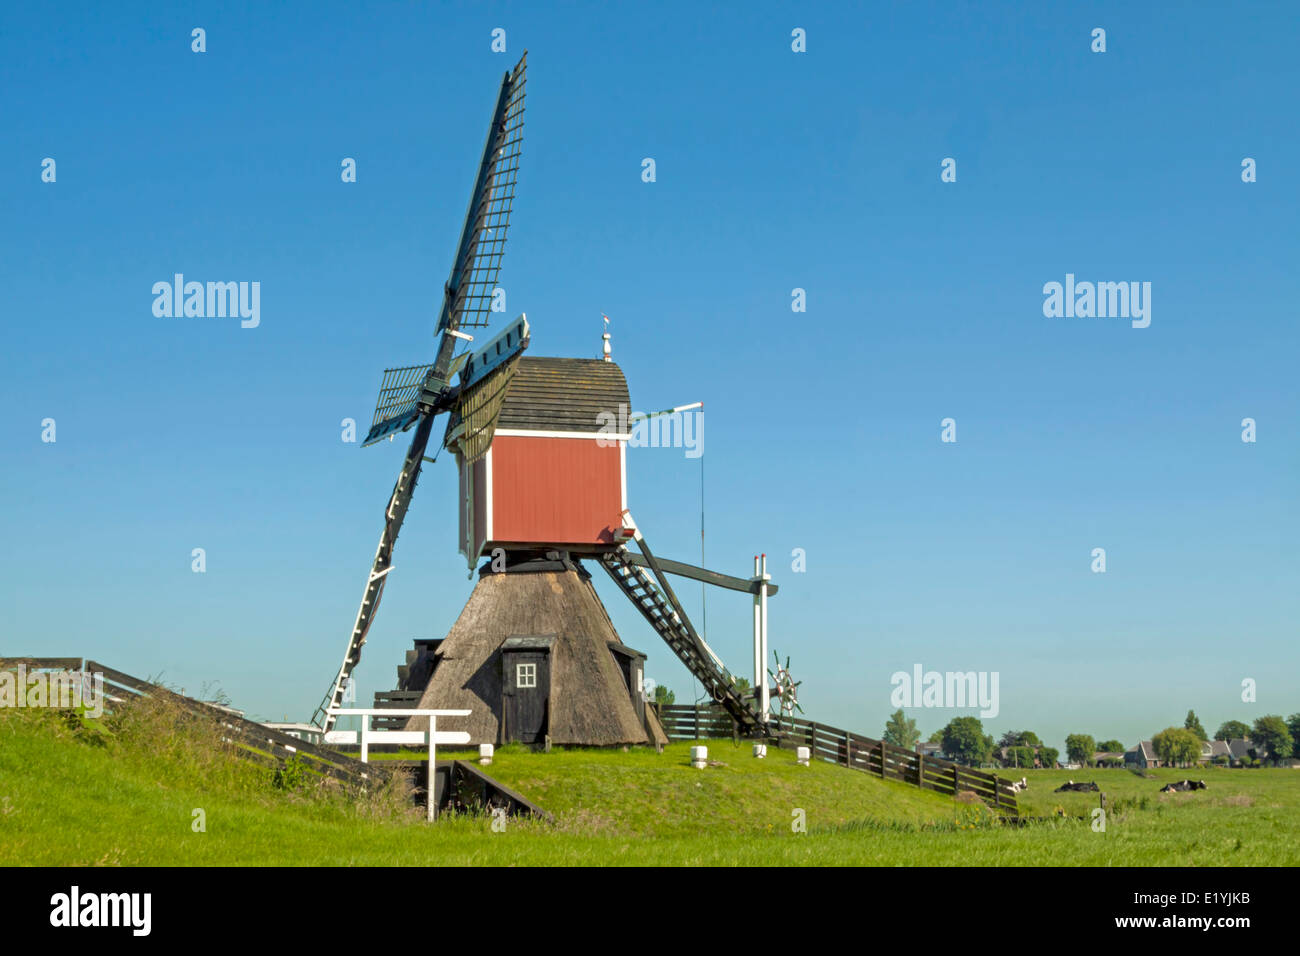 why are the dutch called dutch